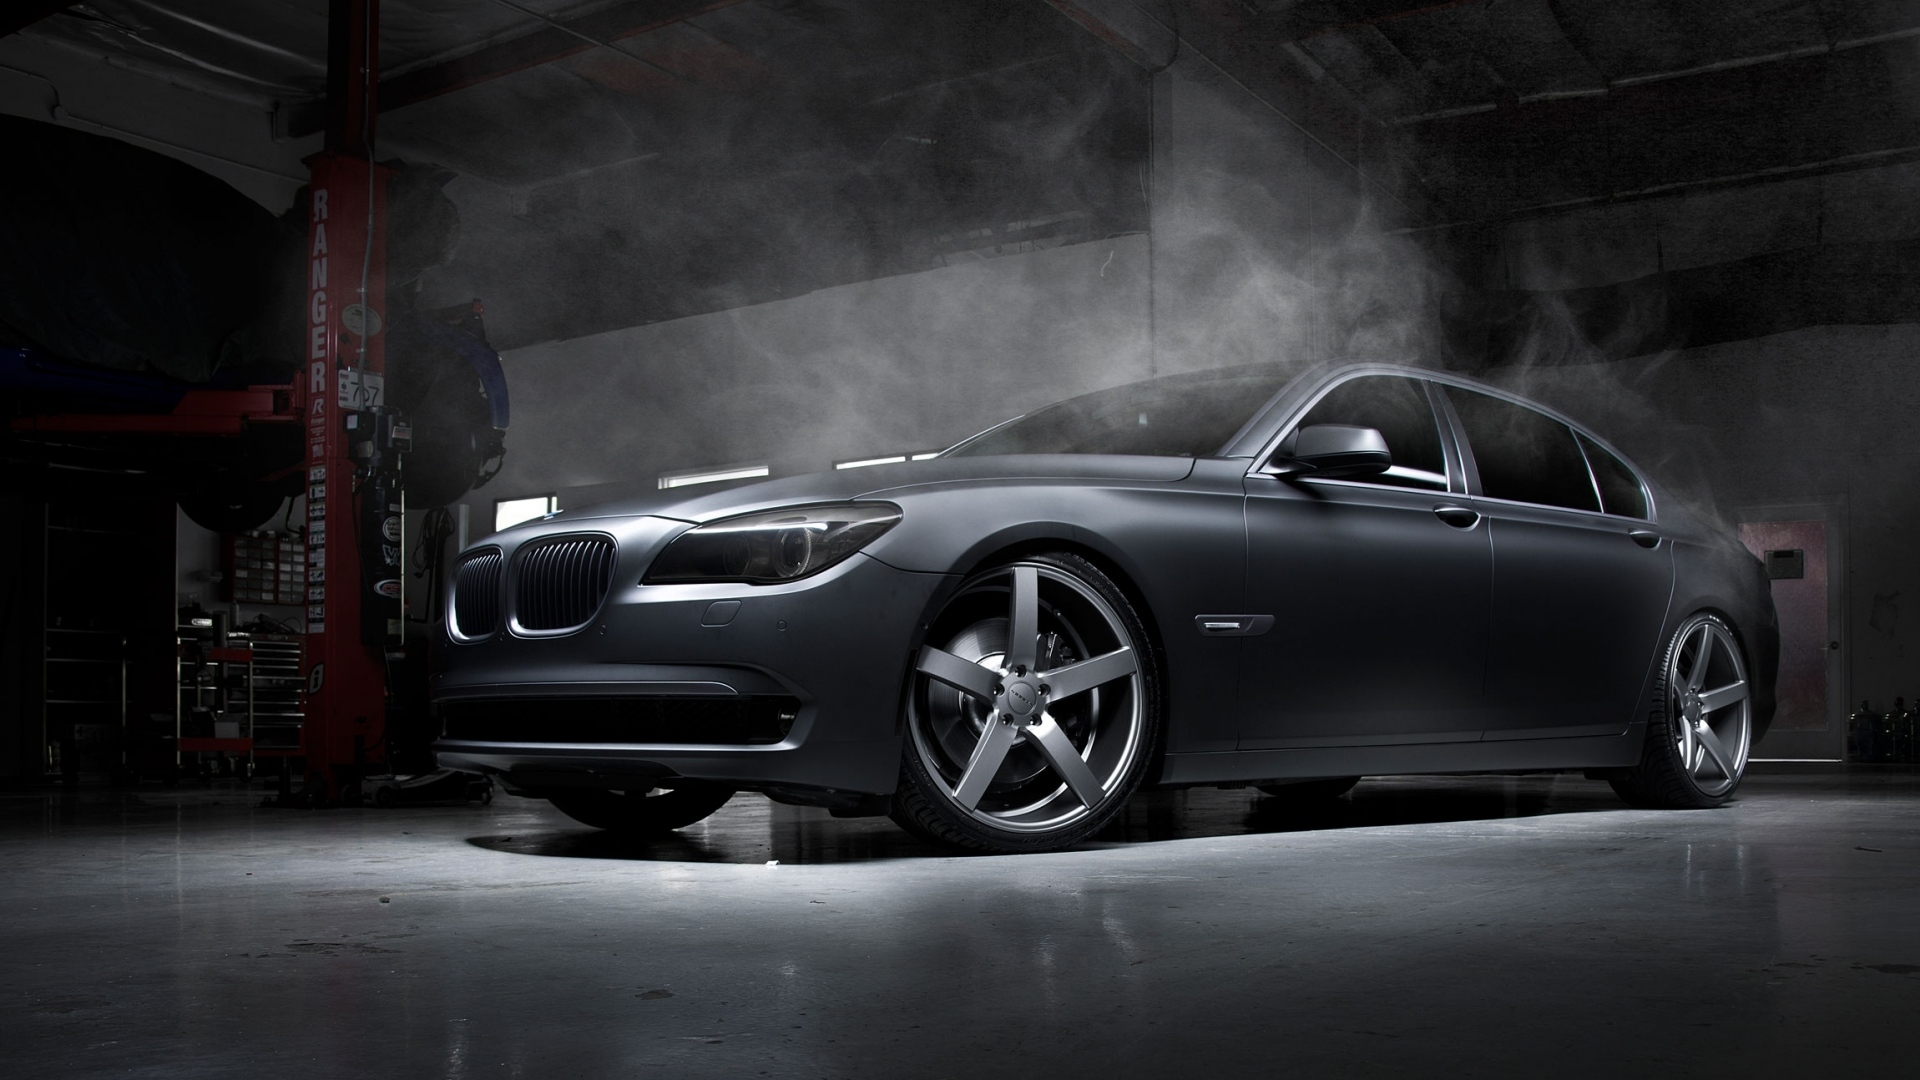 bmw_car_tuning_garage_wheels_smoke_94012_1920x1080